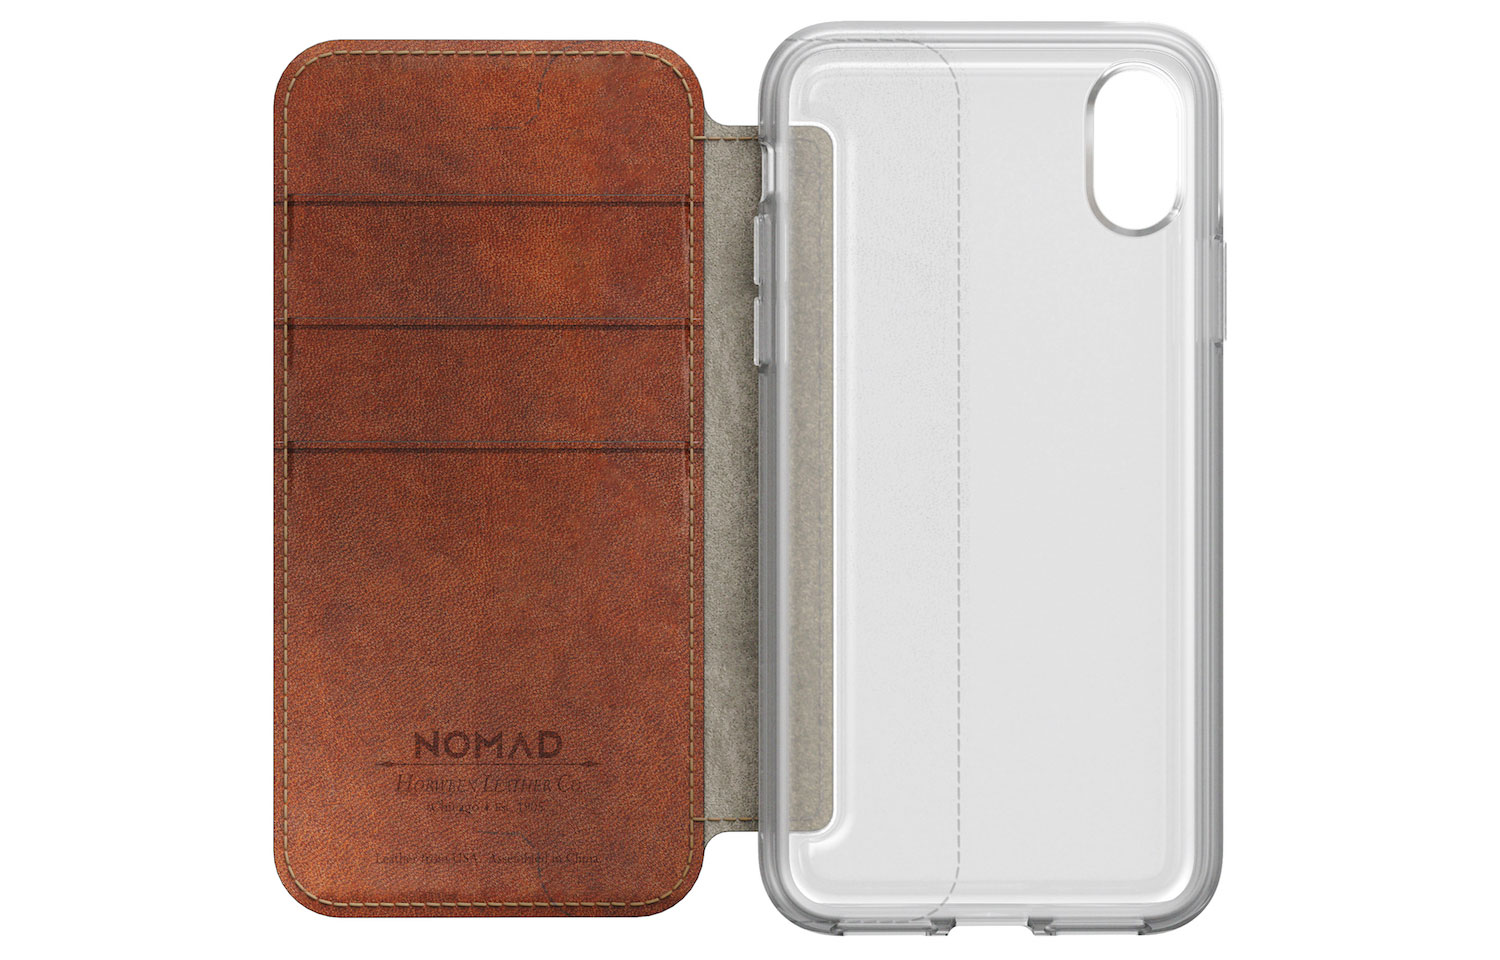 NOMAD CLEAR FOLIO for iPhoneXの図